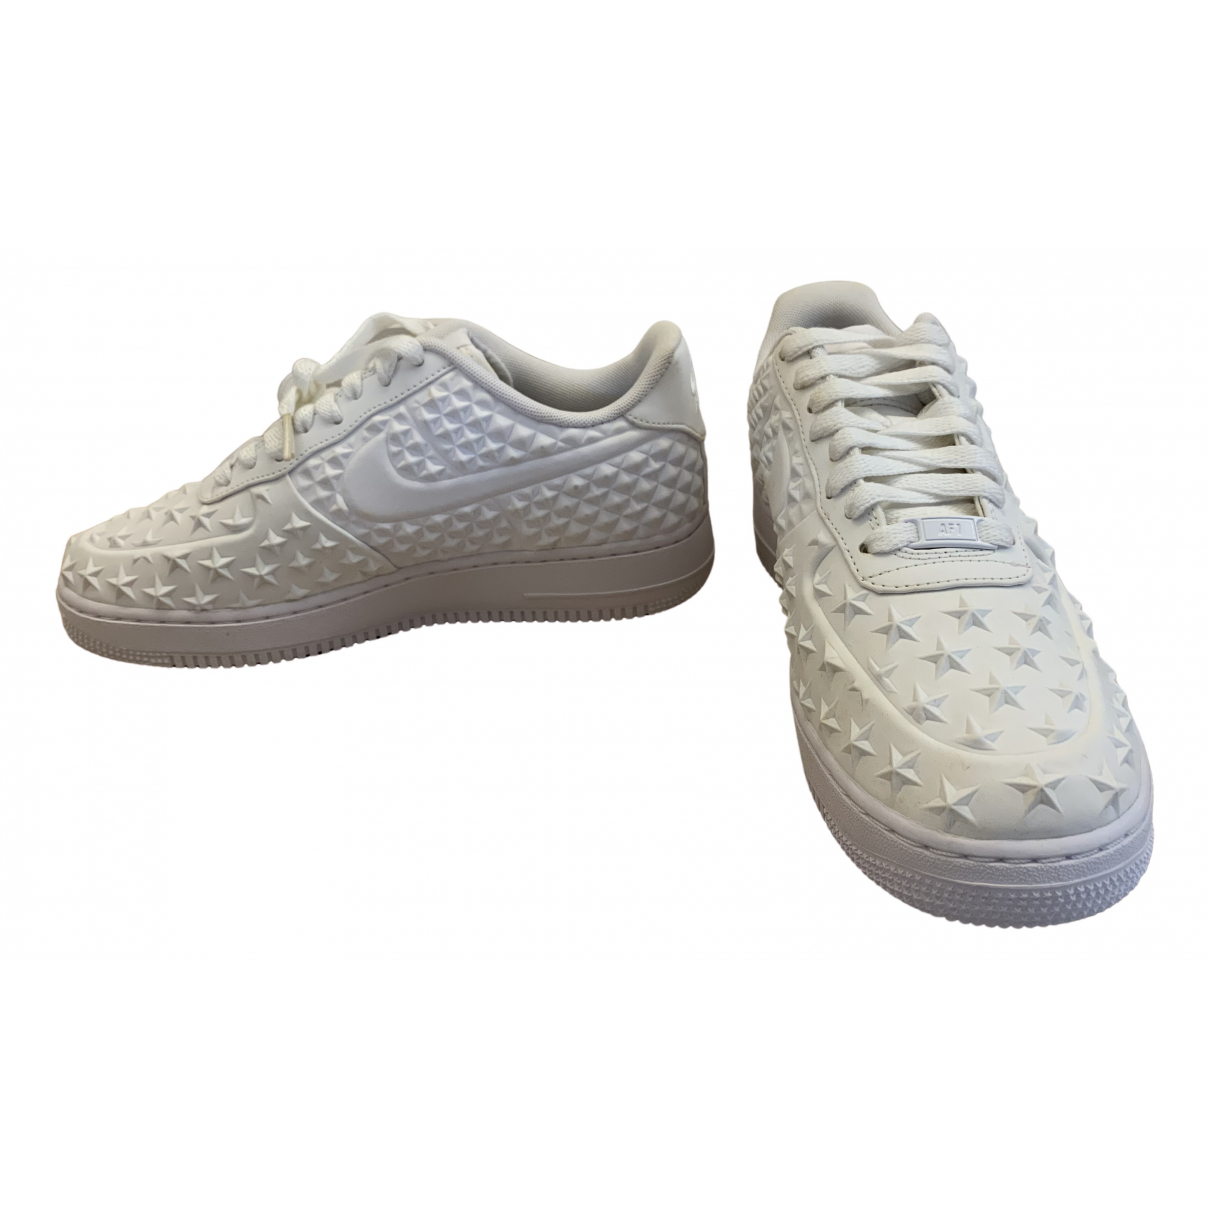 Nike Air Force 1 White Rubber Trainers for Men 42 EU